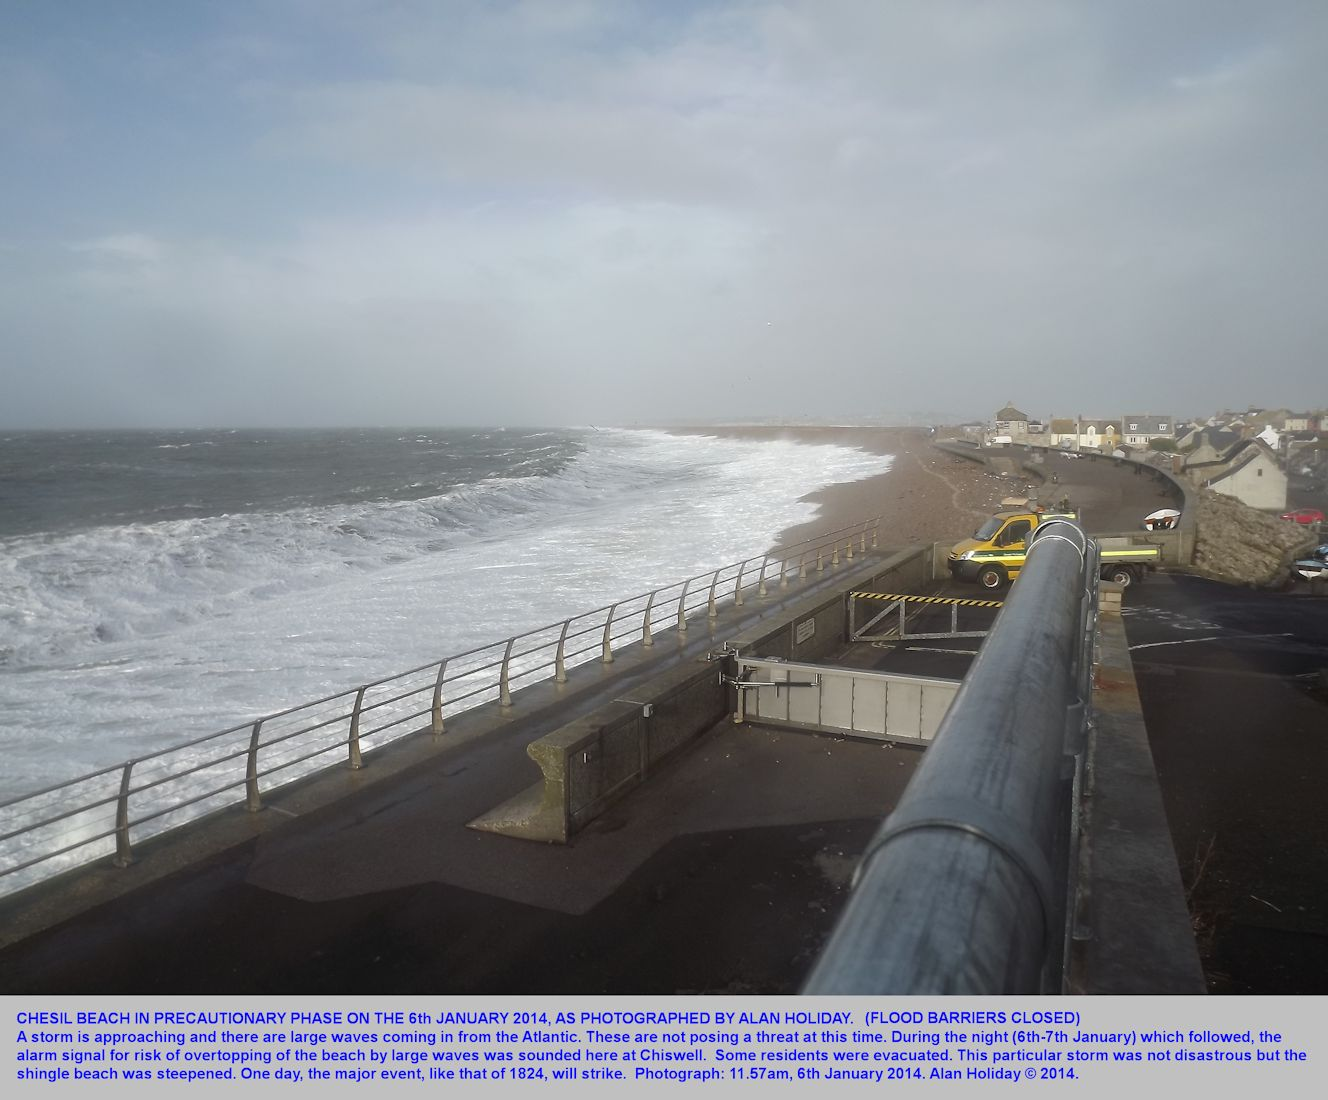 Large waves strike the Chesil Beach, Dorset, in the daytime prior to the major storm of the night of the 6th to 7th January, 2014; sea defence flood gates are closed